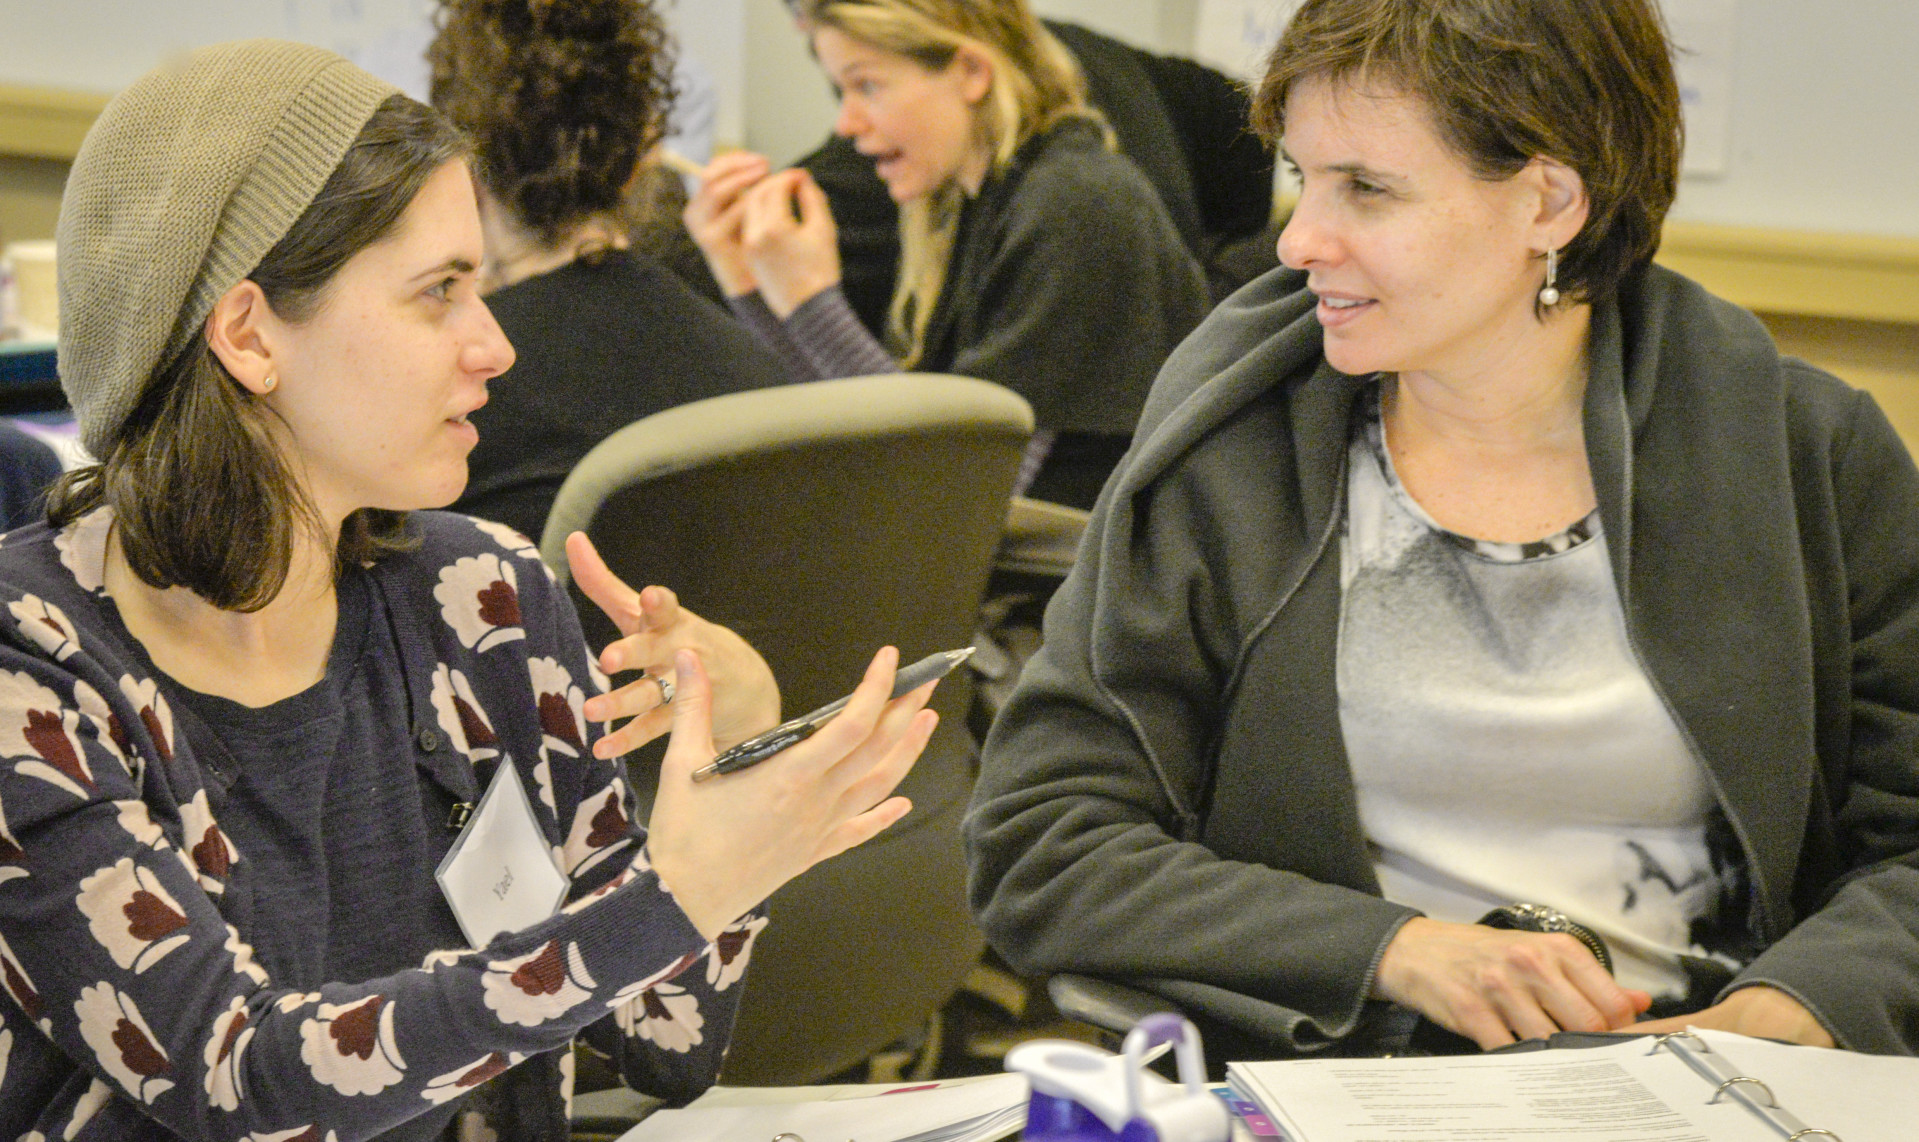 Mandel Teacher Educator Institute, MTEI, held 3 morning sessions for teachers in Skokie, IL